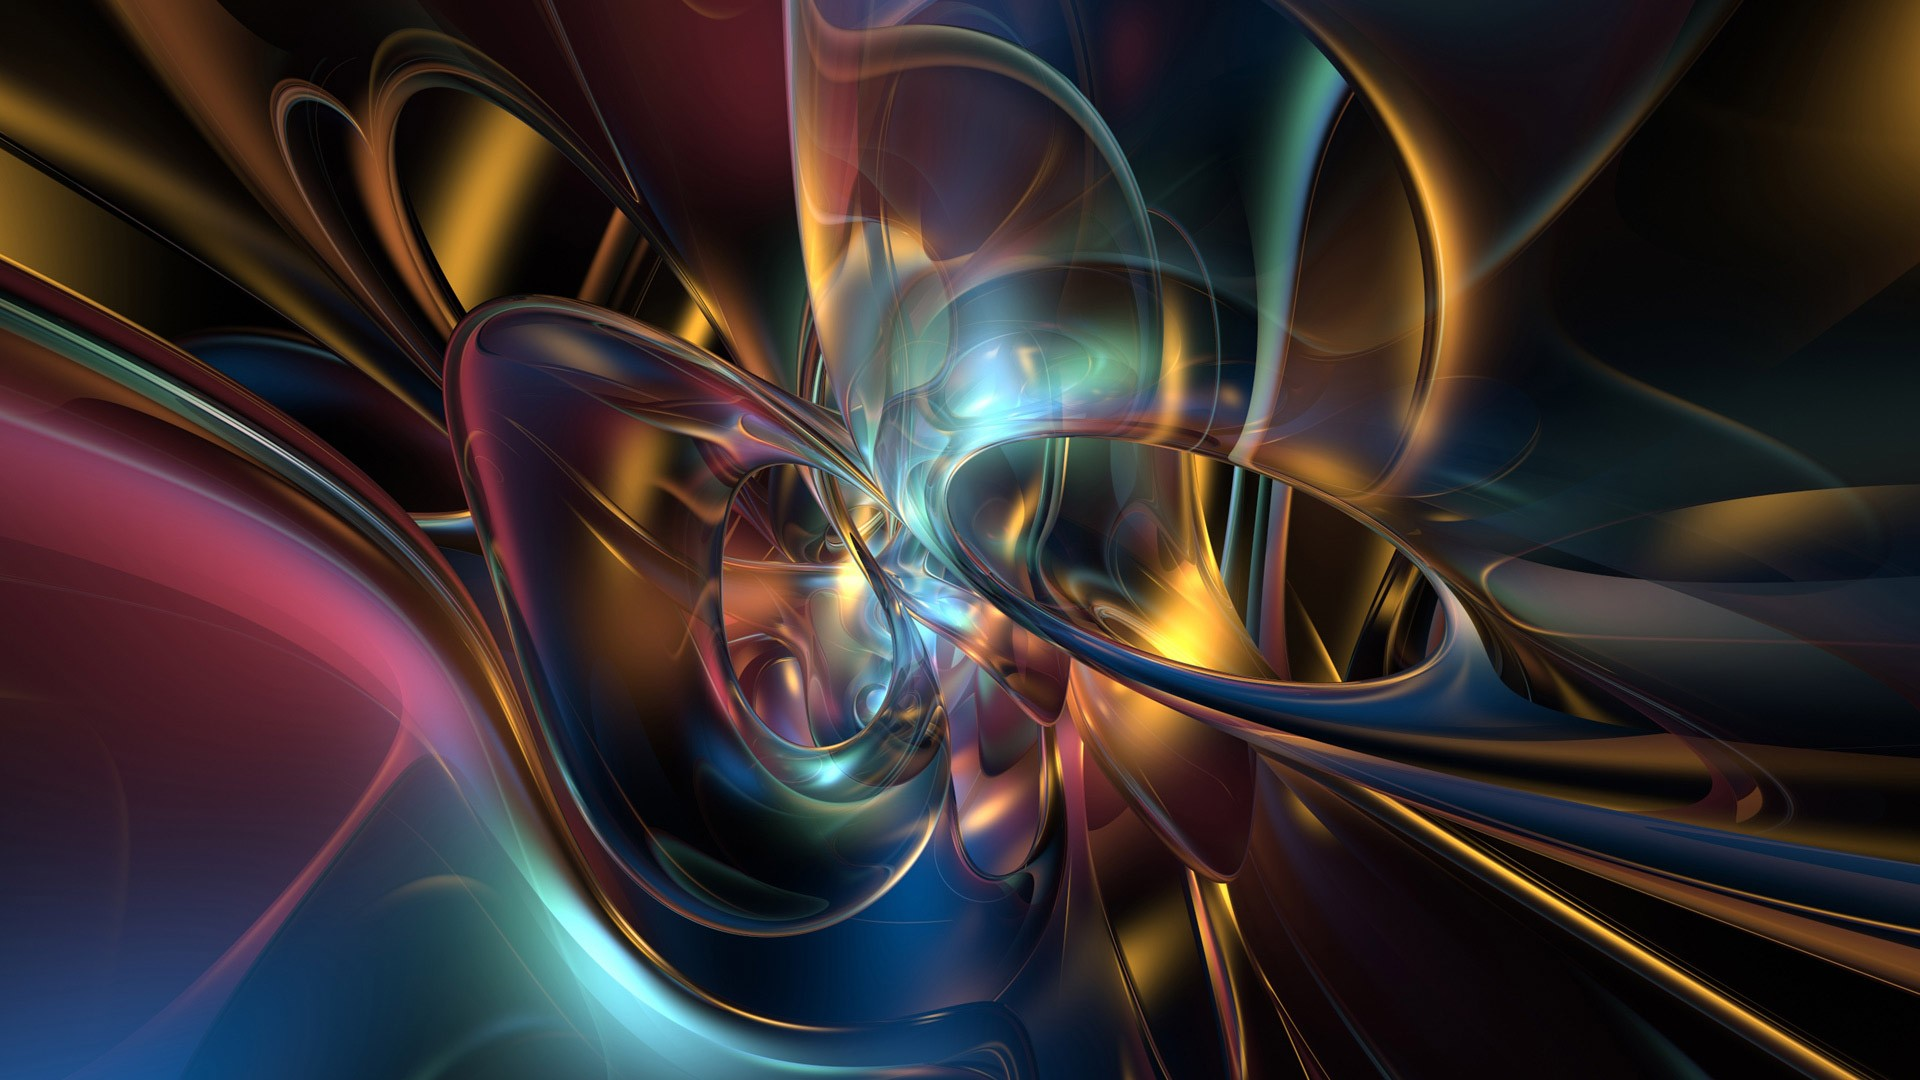 Abstract 1080p 3d Images 1 HD Desktop Wallpapers Cool Images 1920x1080